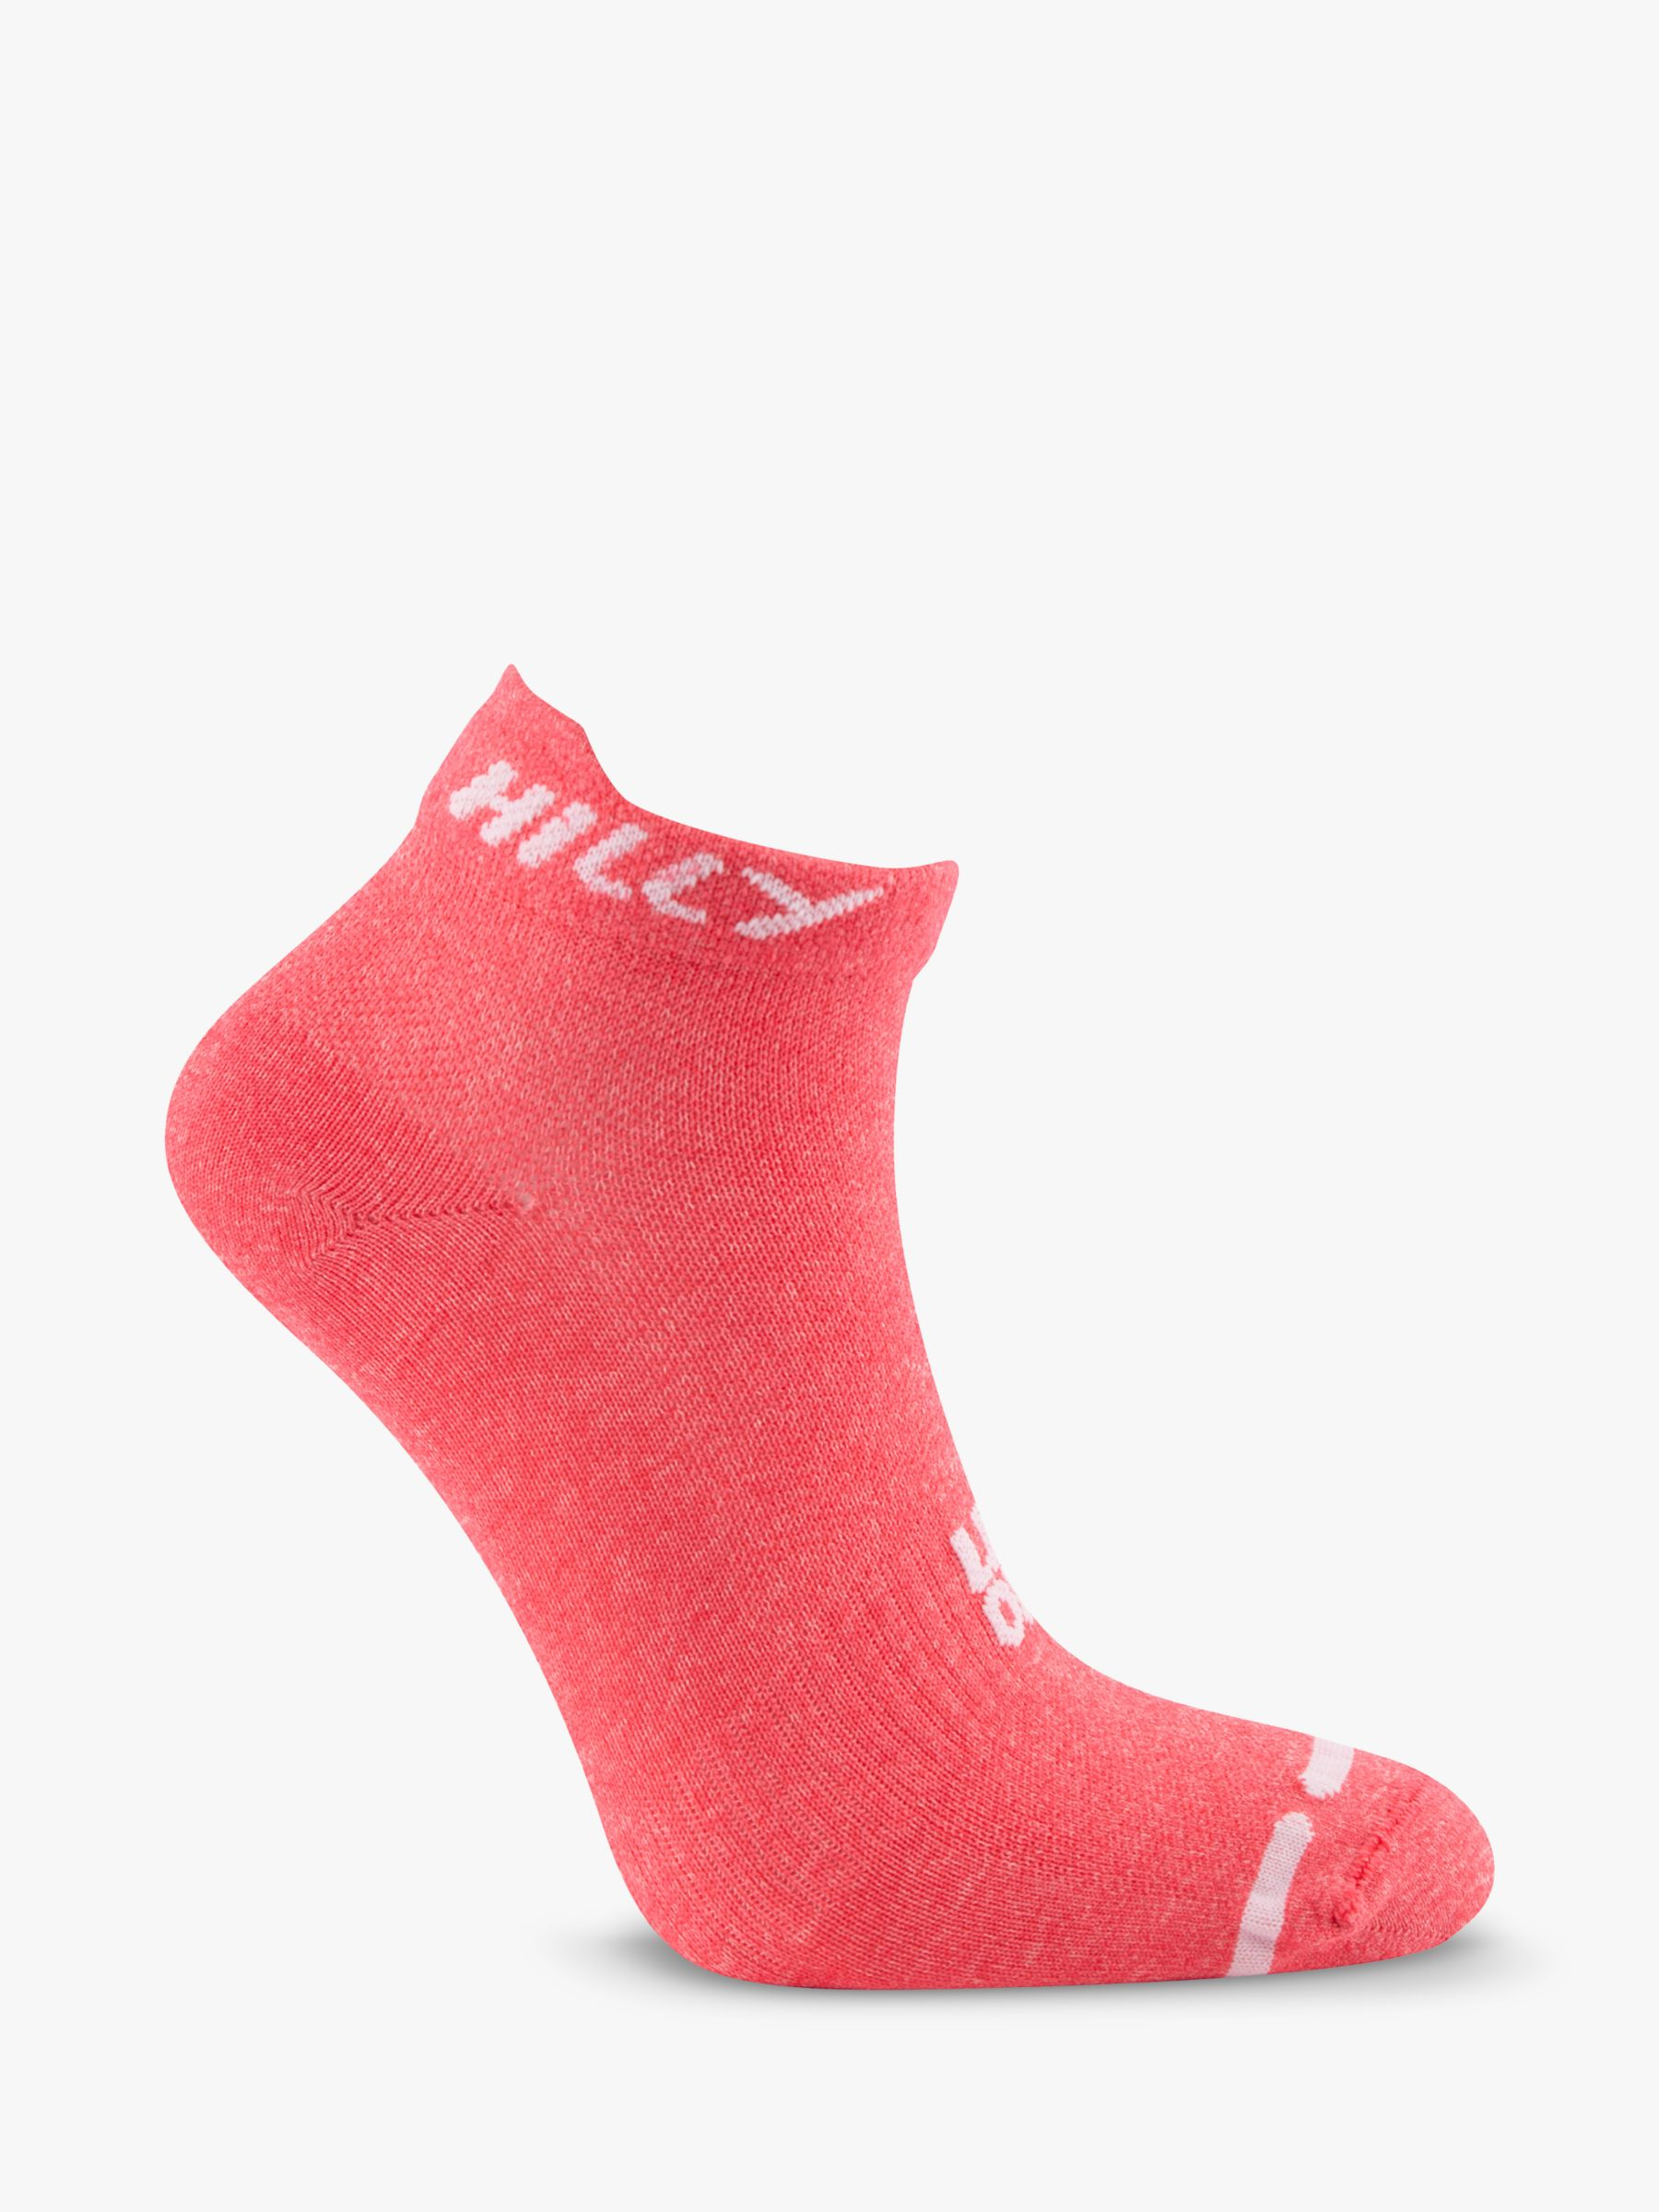 Hilly Hilly Lite Running Socklets, Hot Pink Marl